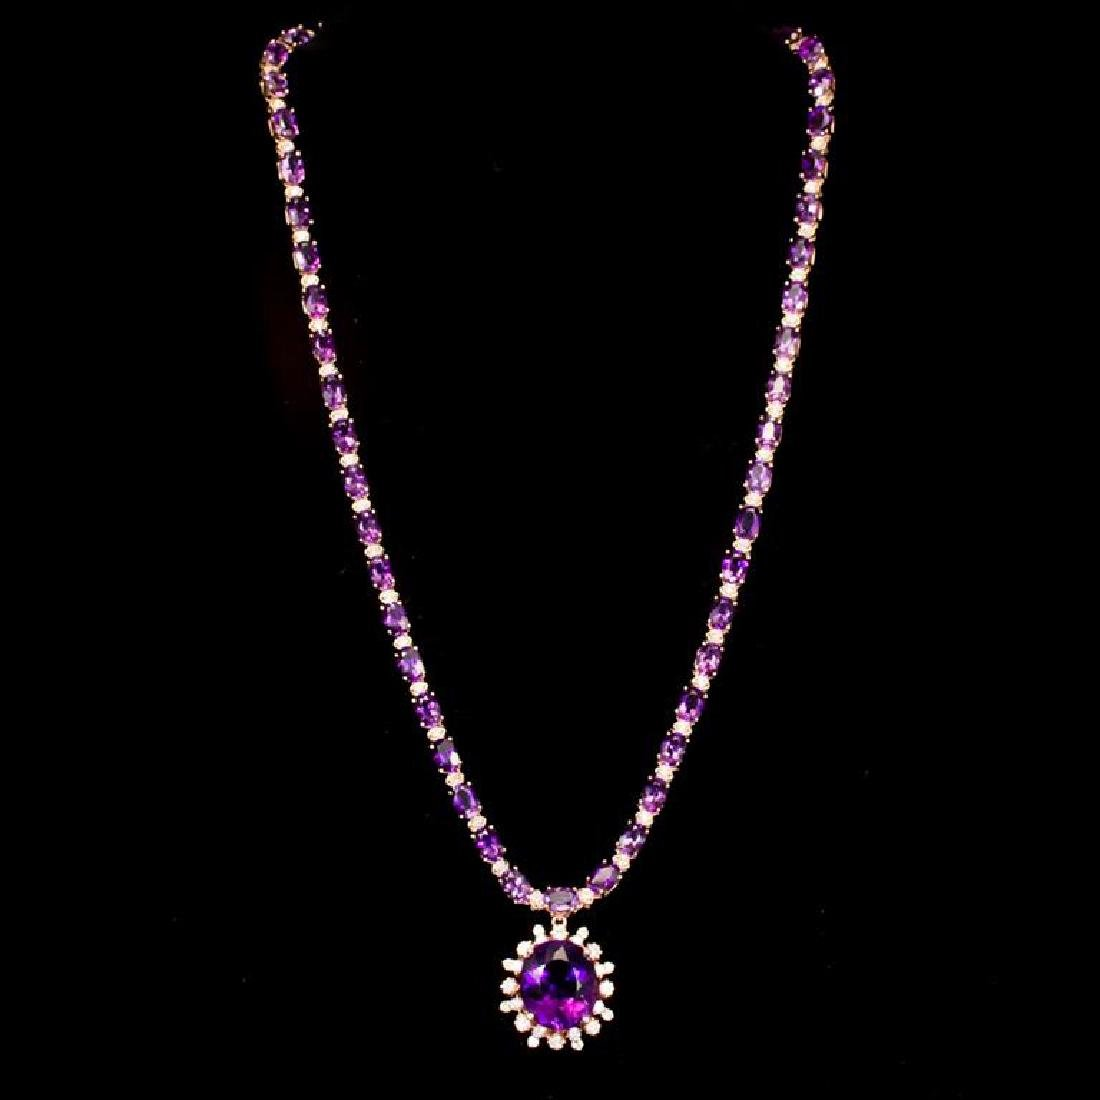 14K Gold 31.07ct Amethyst 2.45ct Diamond Necklace - 2